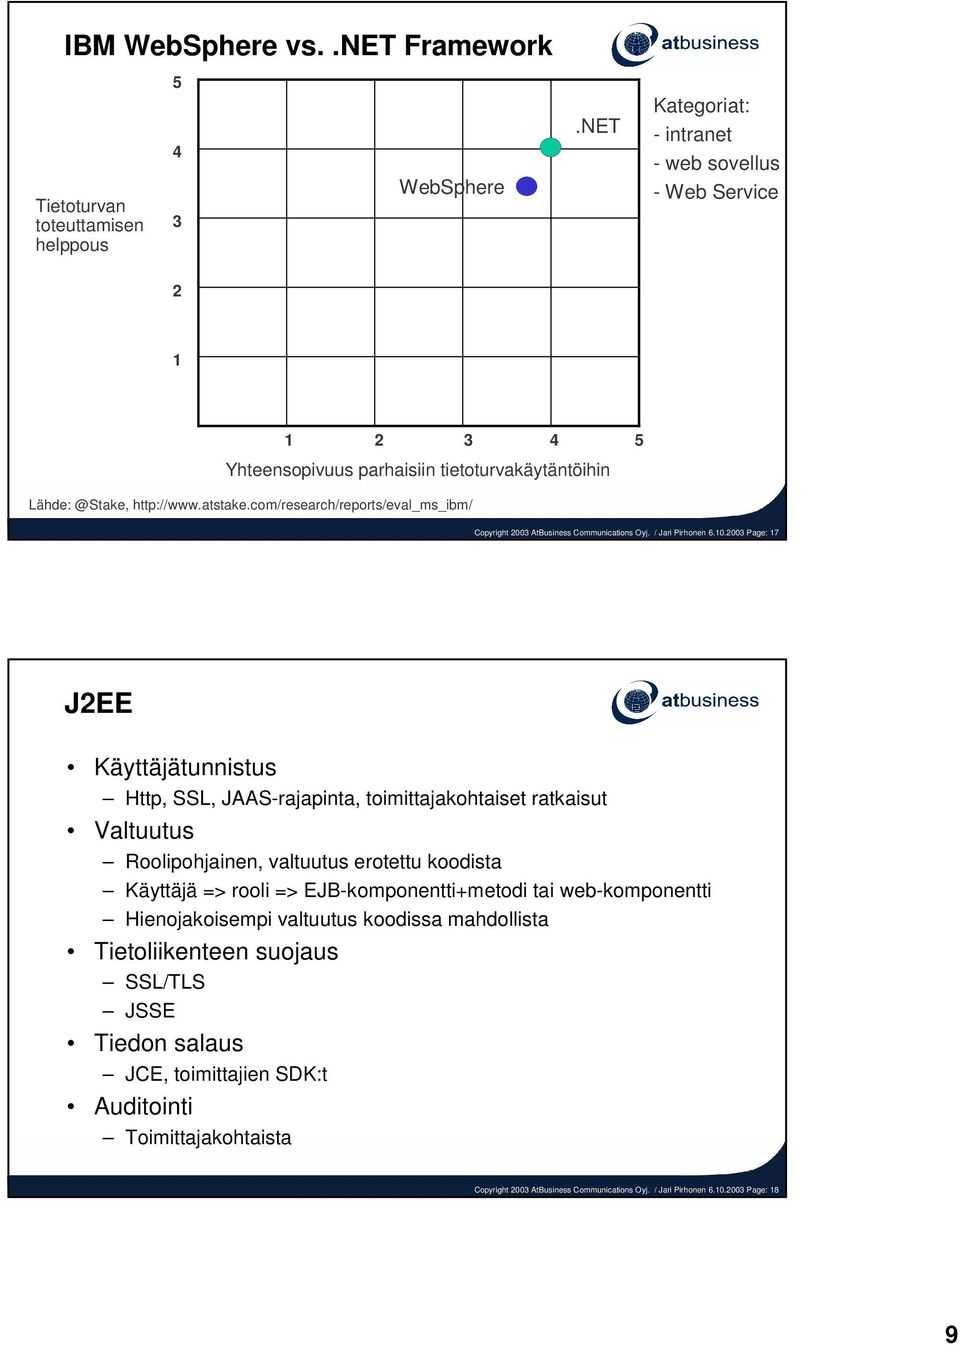 com/research/reports/eval_ms_ibm/ Copyright 2003 AtBusiness Communications Oyj. / Jari Pirhonen 6.10.